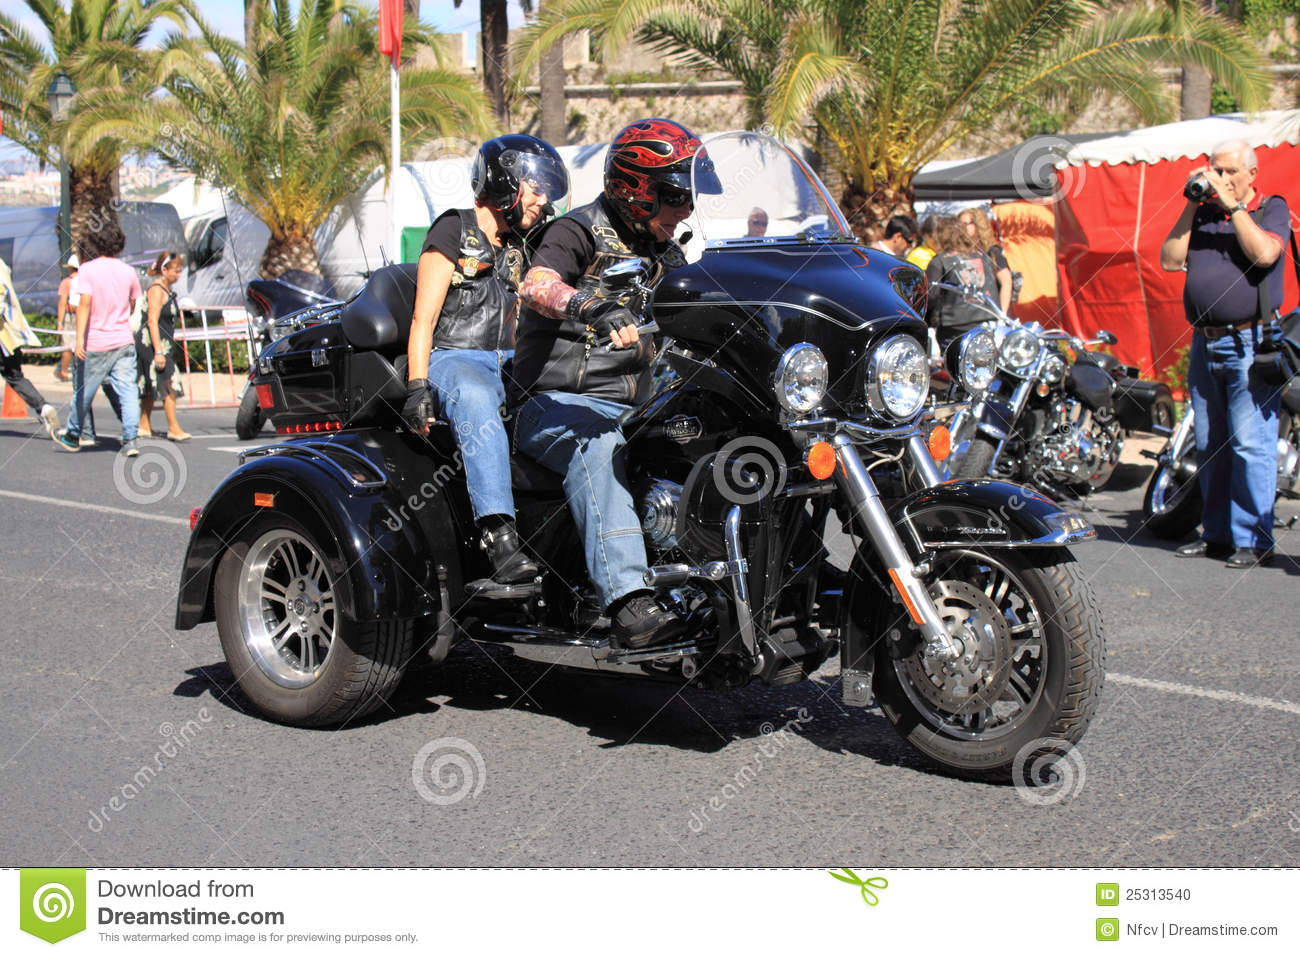 Harley Davidson Parade: Harley-Davidson Parade Editorial Image. Image Of Group